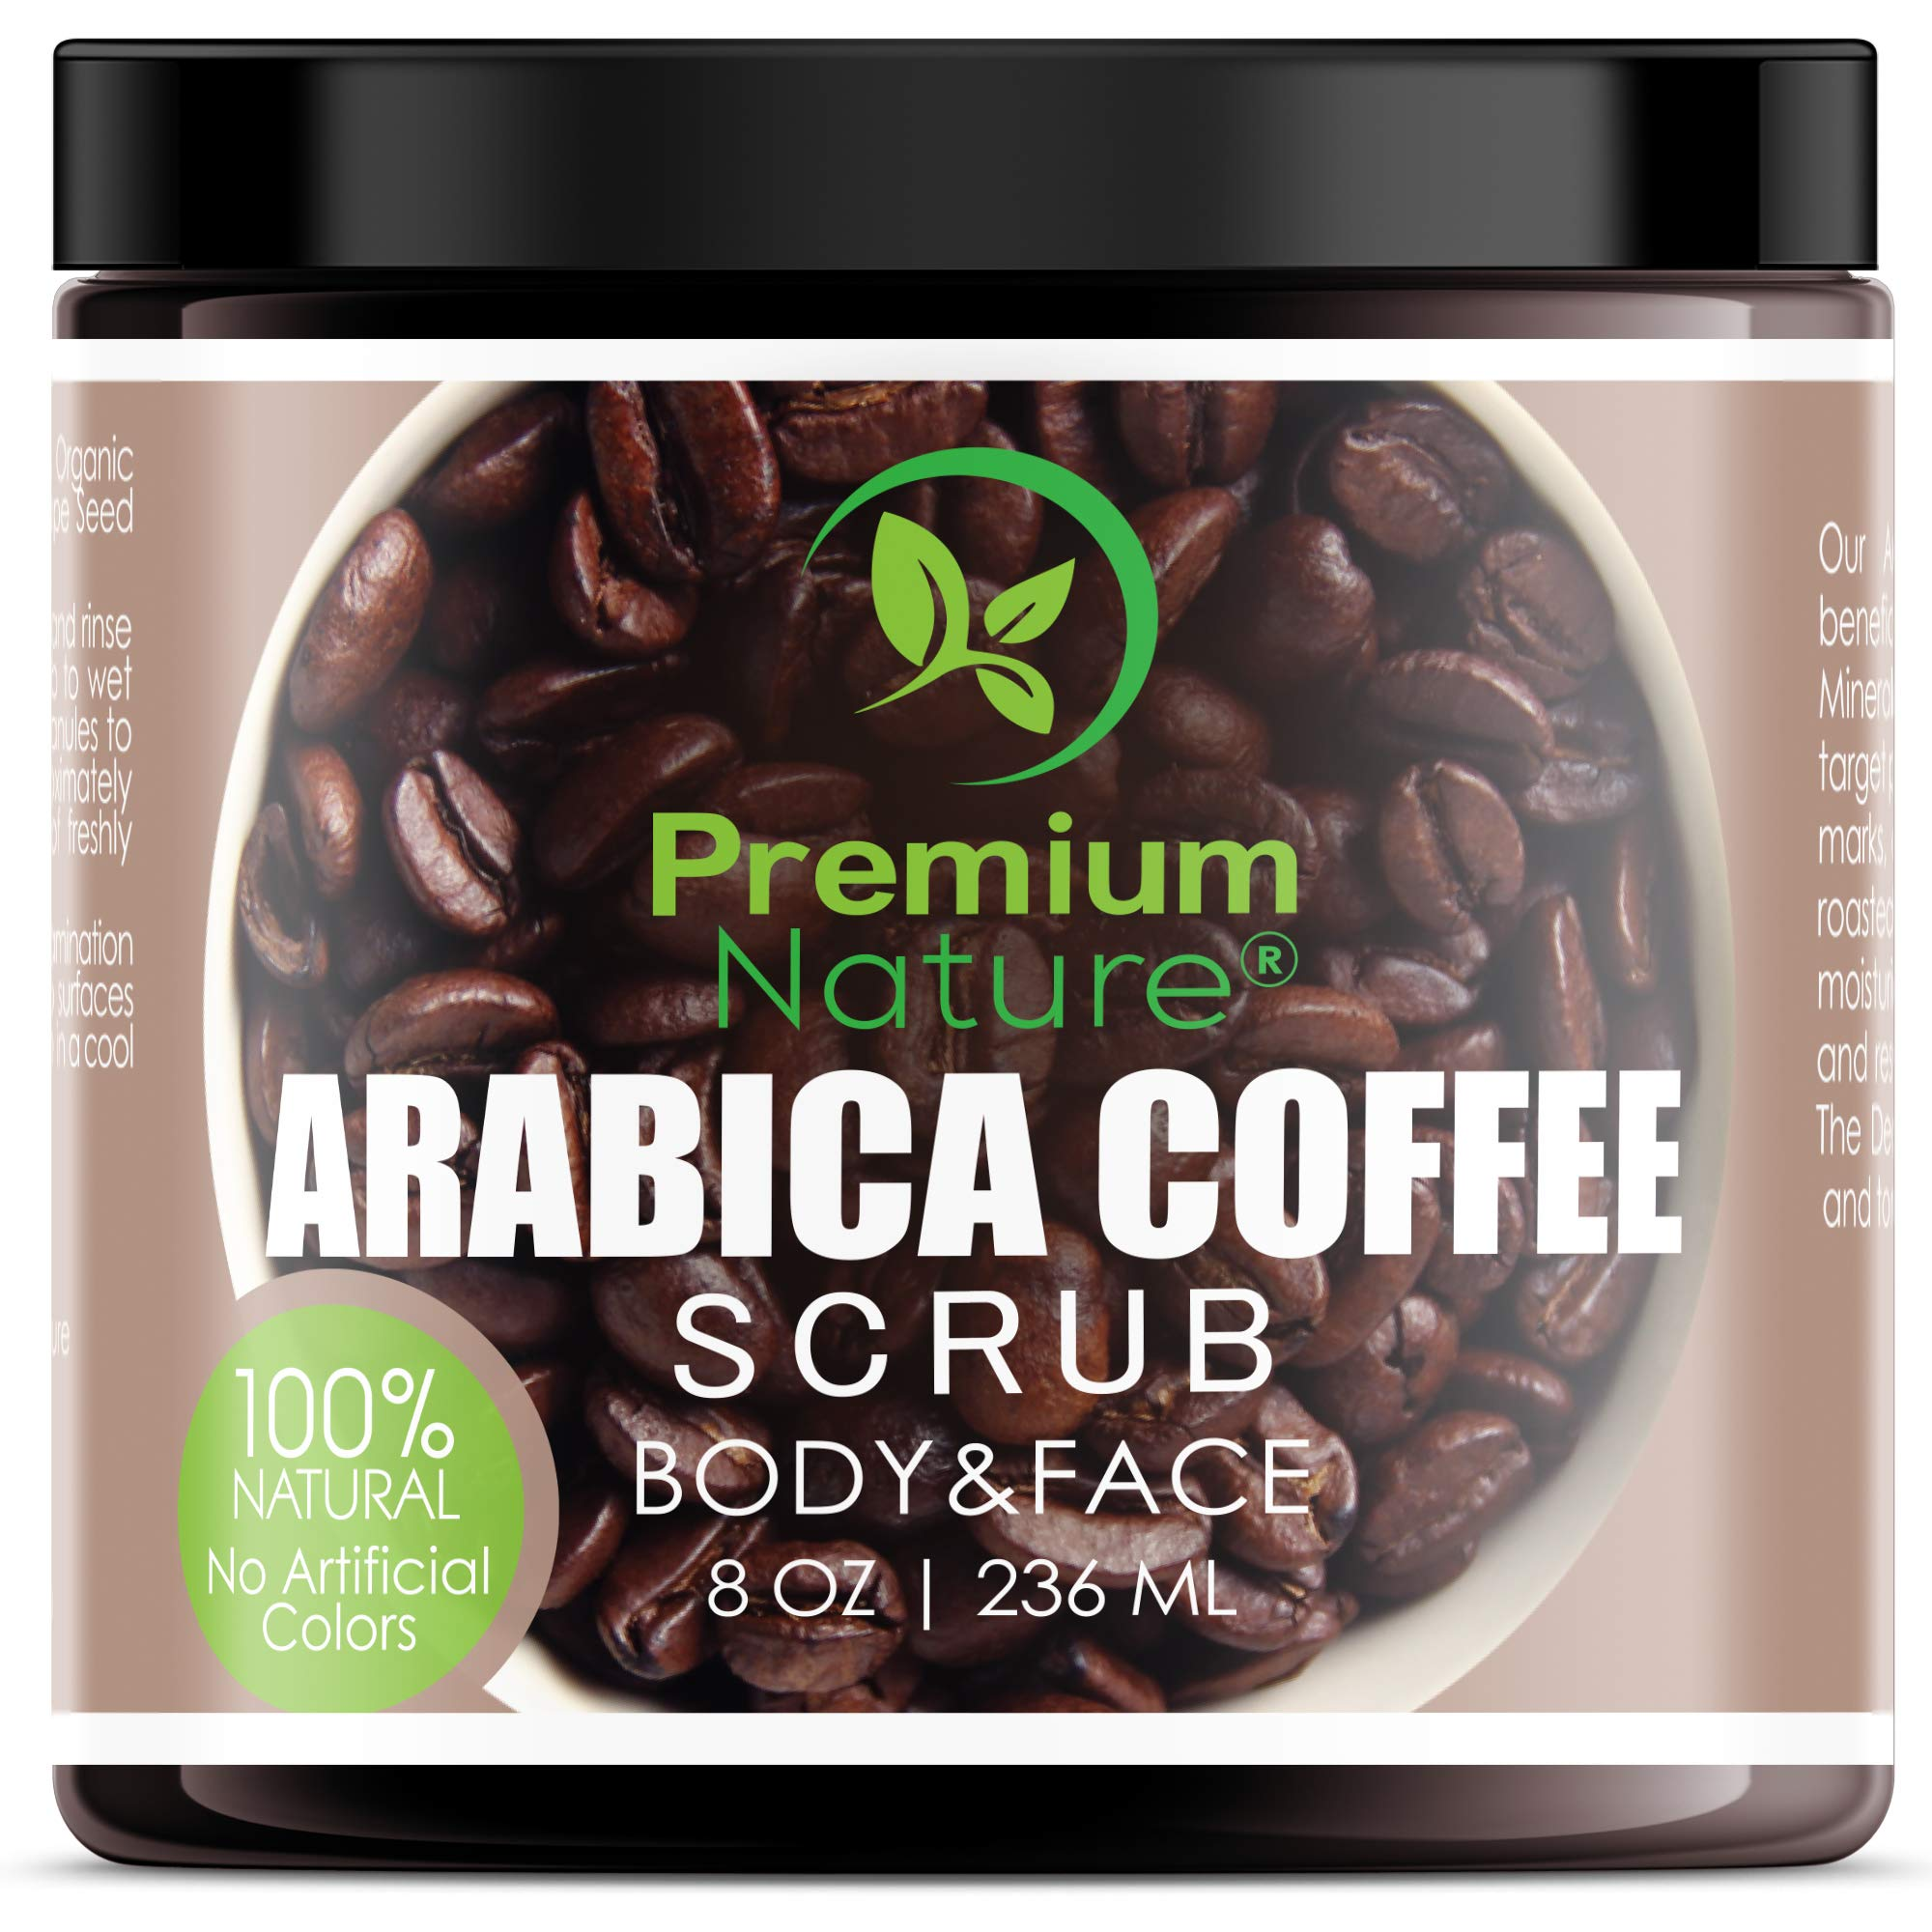 Exfoliating Arabica Coffee Body Scrub Best Skin Exfoliator Face